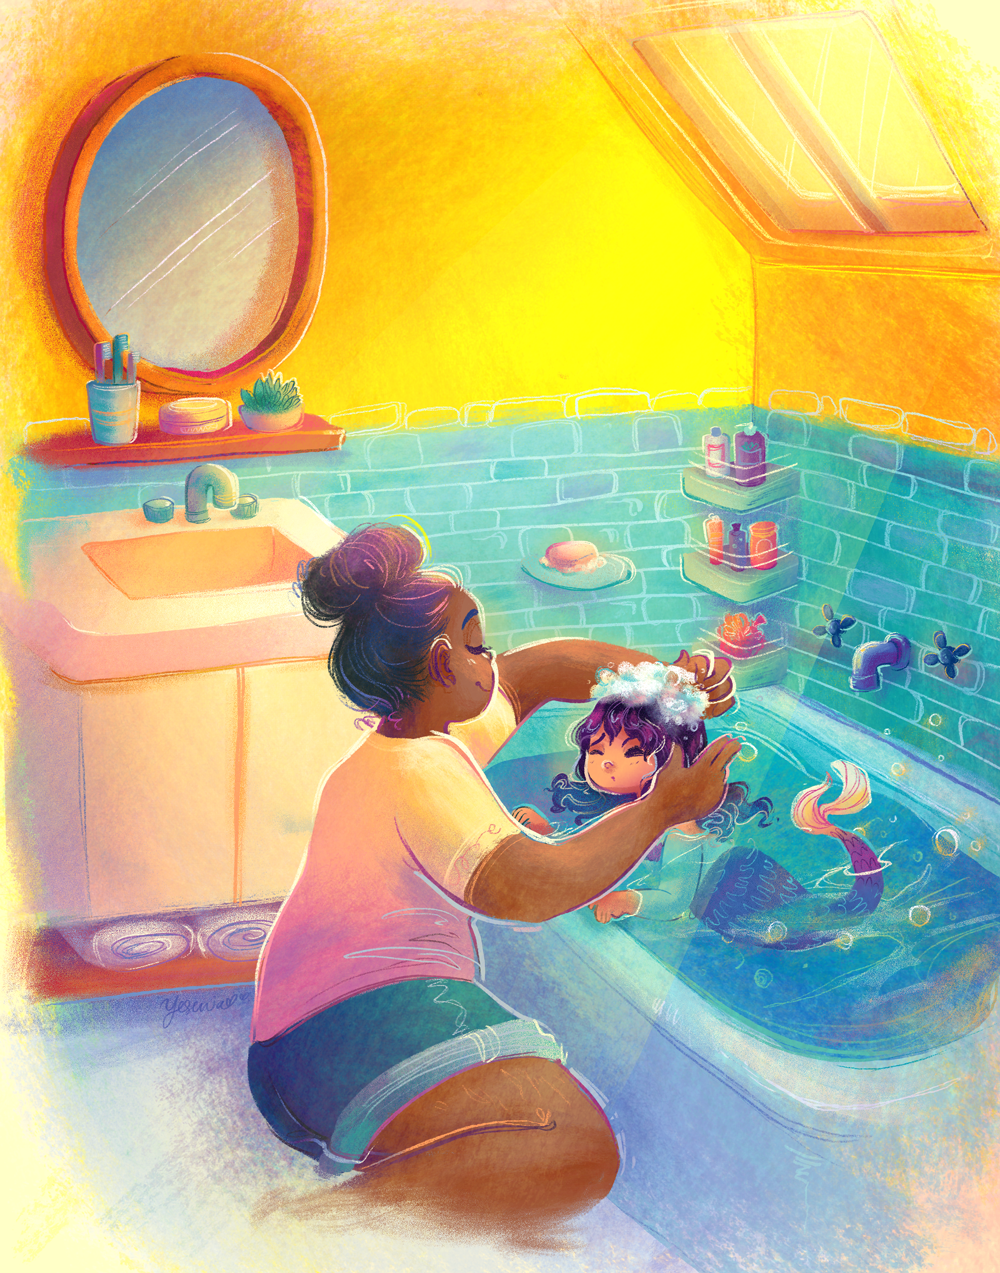 A mom washing her mermaid daughter's hair in the bathtub